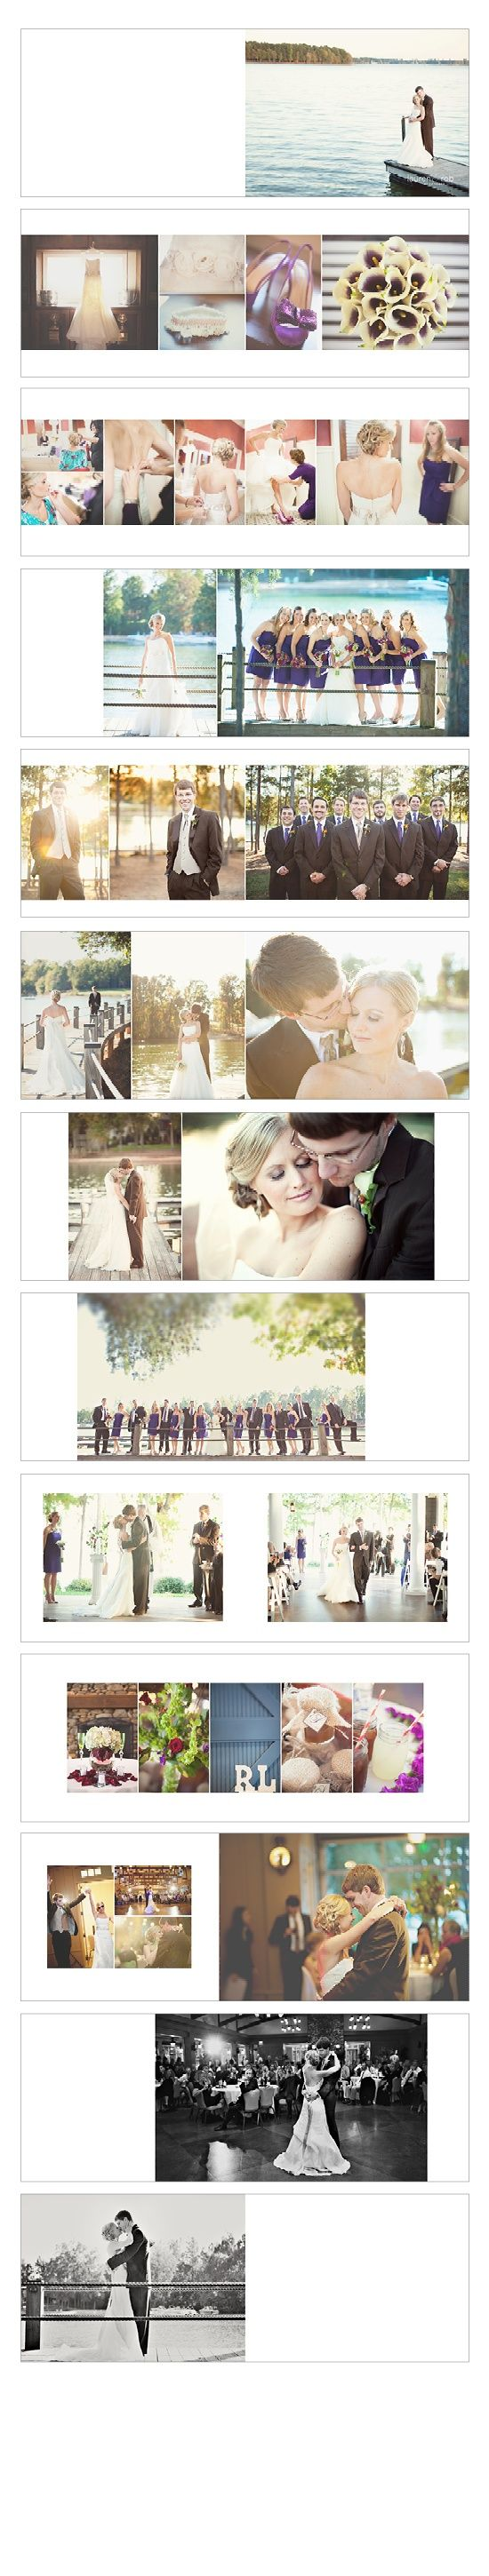 A Big Rectangular Album Maximizes Image Space But Uses Lot Of Vertical Images Note Frame